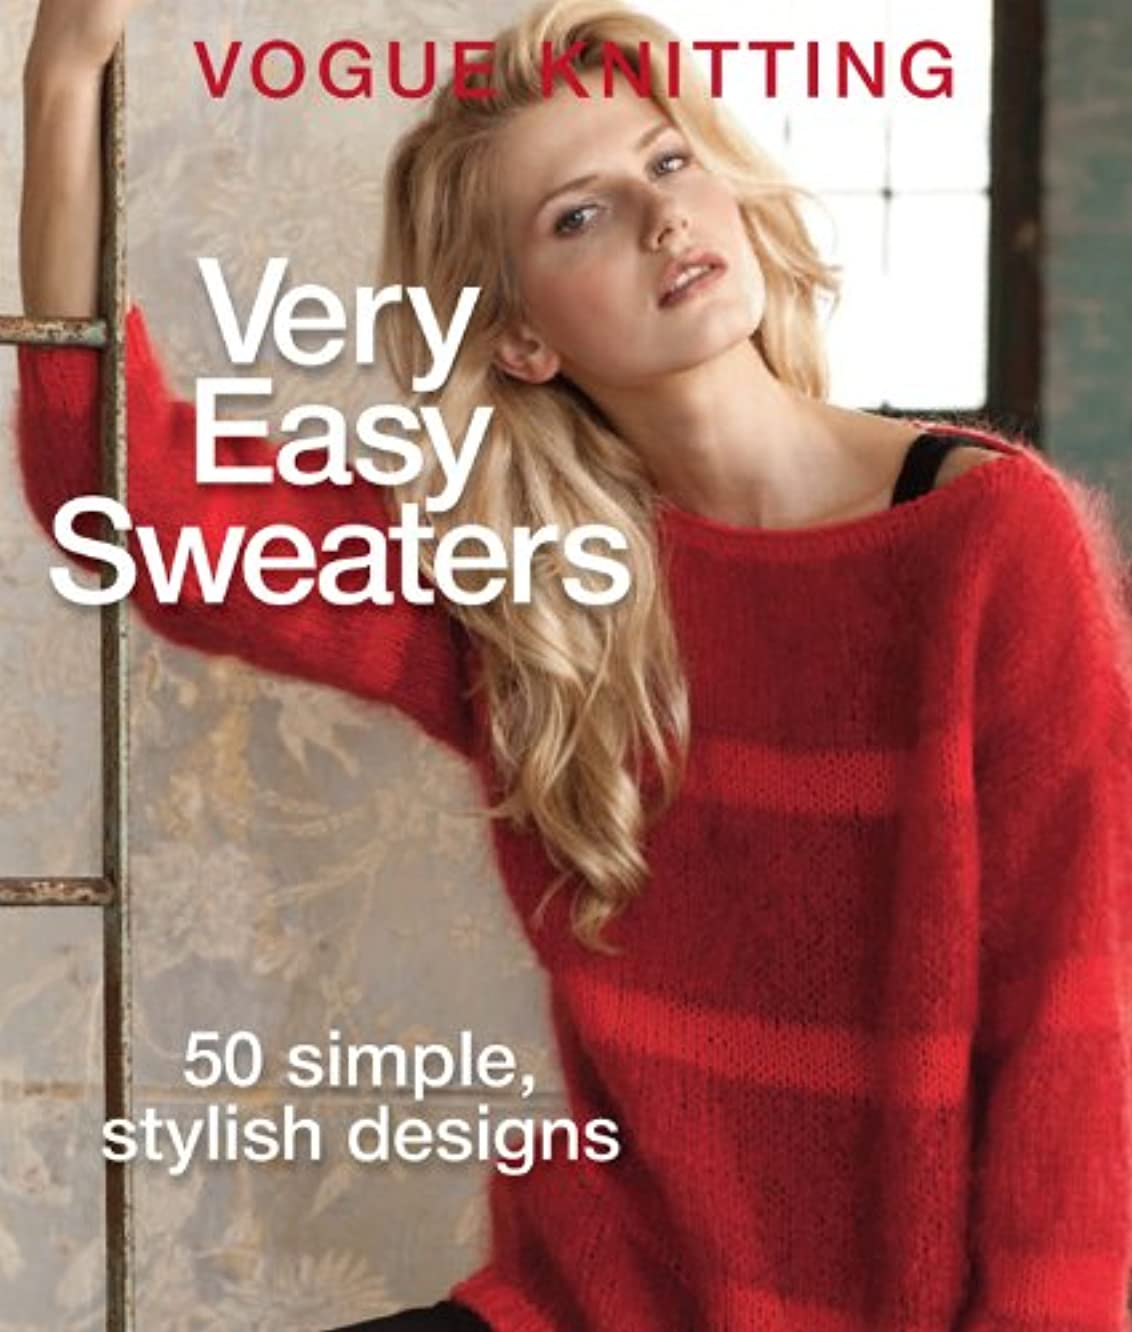 Vogue? Knitting Very Easy Sweaters: 50 Simple, Stylish Designs